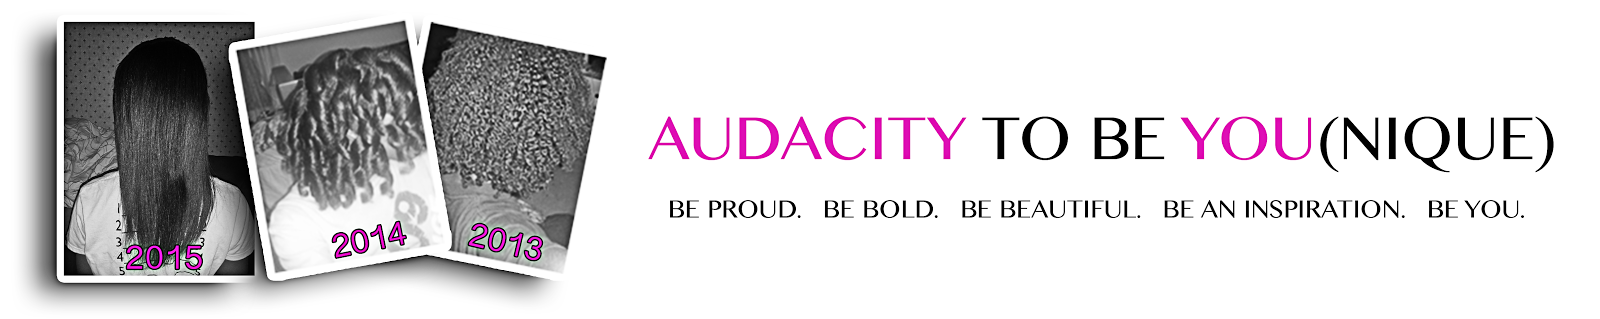 Audacity to be You